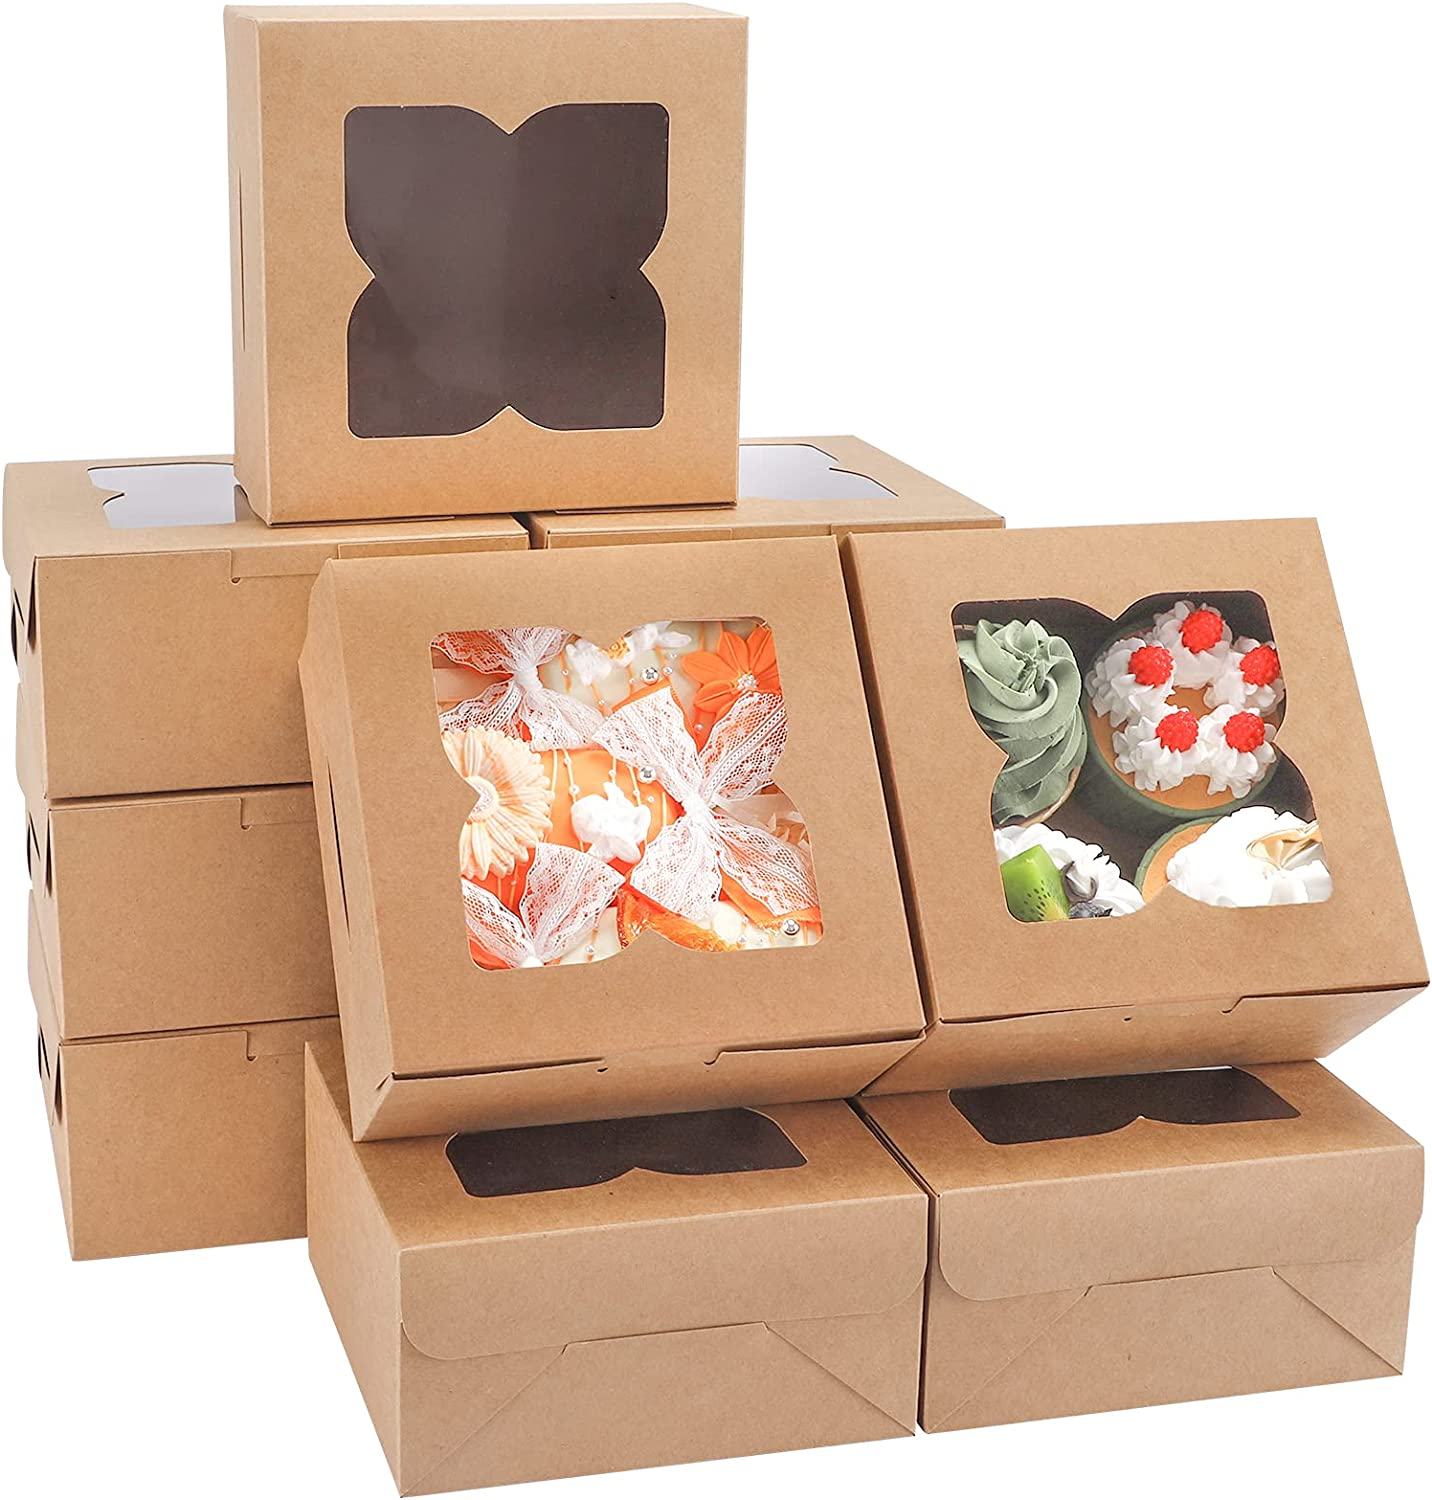 TOMNK 36pcs Brown Bakery Boxes 6 x 6 x 3in Cake Boxes Cookie Boxes with Windows for Pies, Cookies, Smash Hearts, Strawberries and Muffins